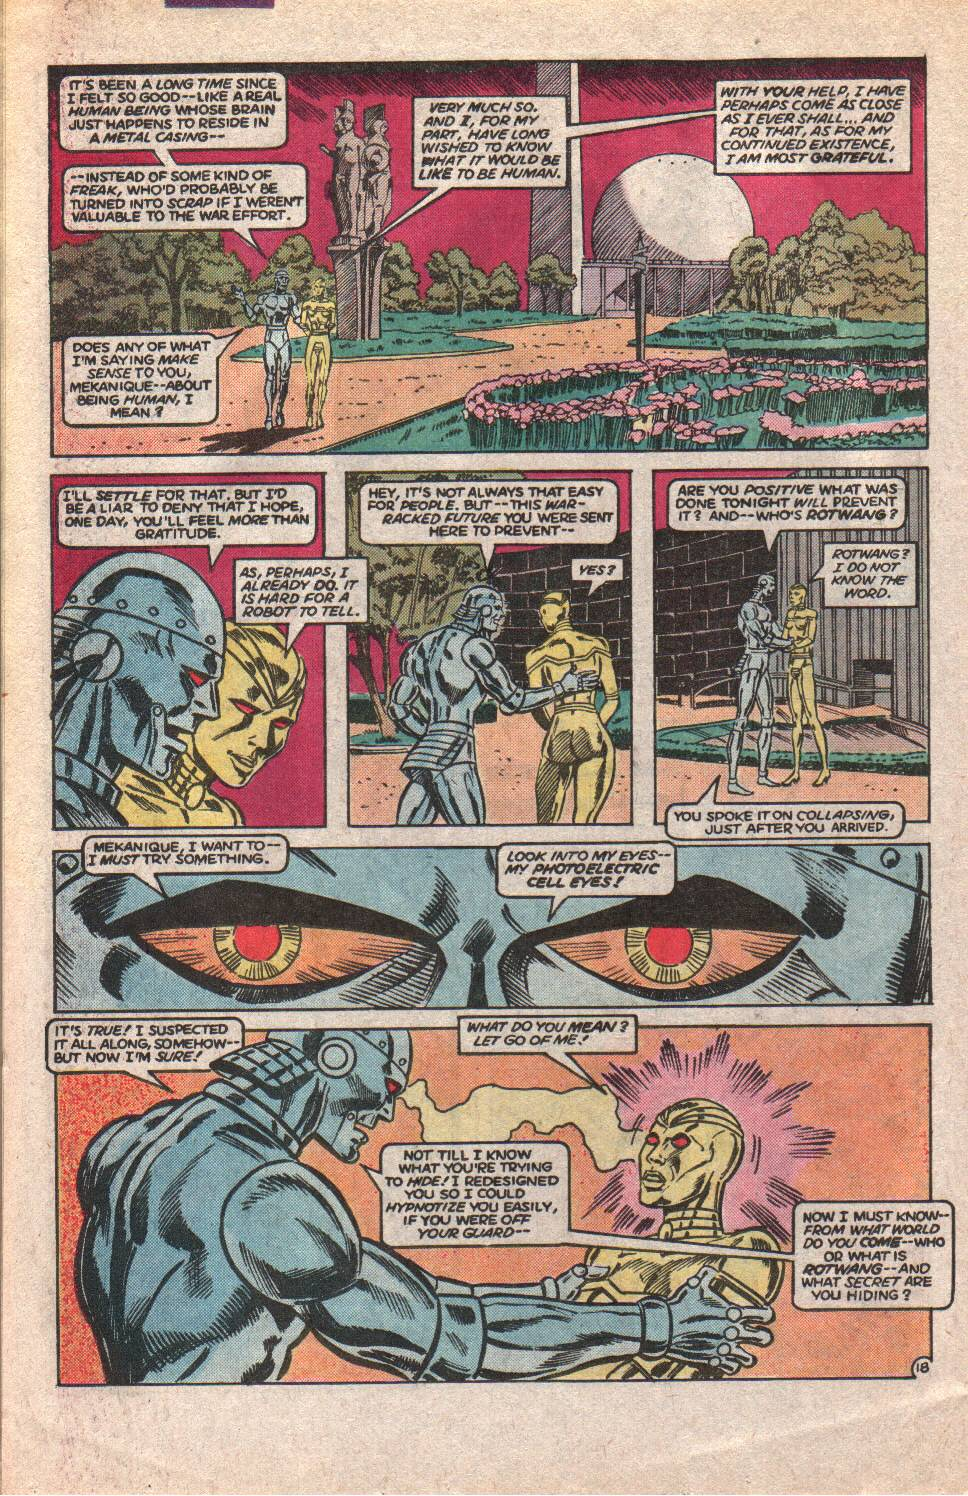 Read online All-Star Squadron comic -  Issue #60 - 26